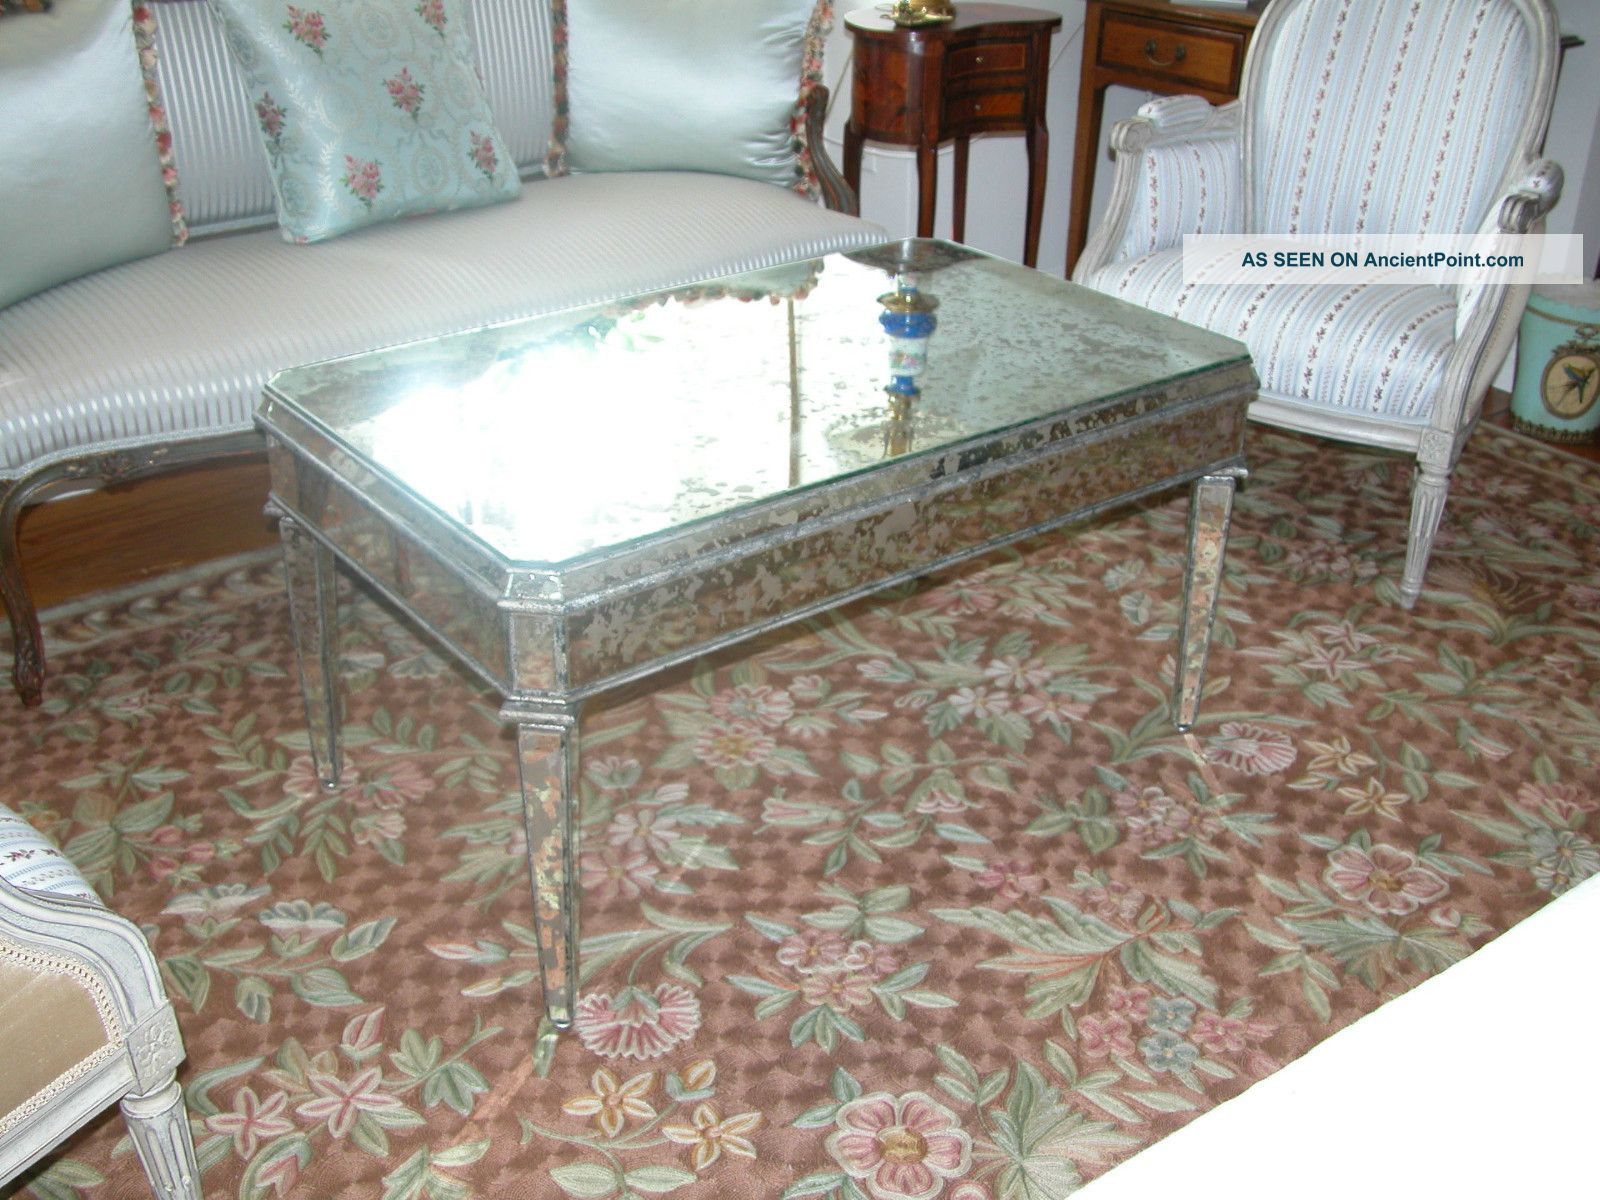 West Elm Mirrored Coffee Table | Mirrored Coffee Tables | Mirrored Coffee Table